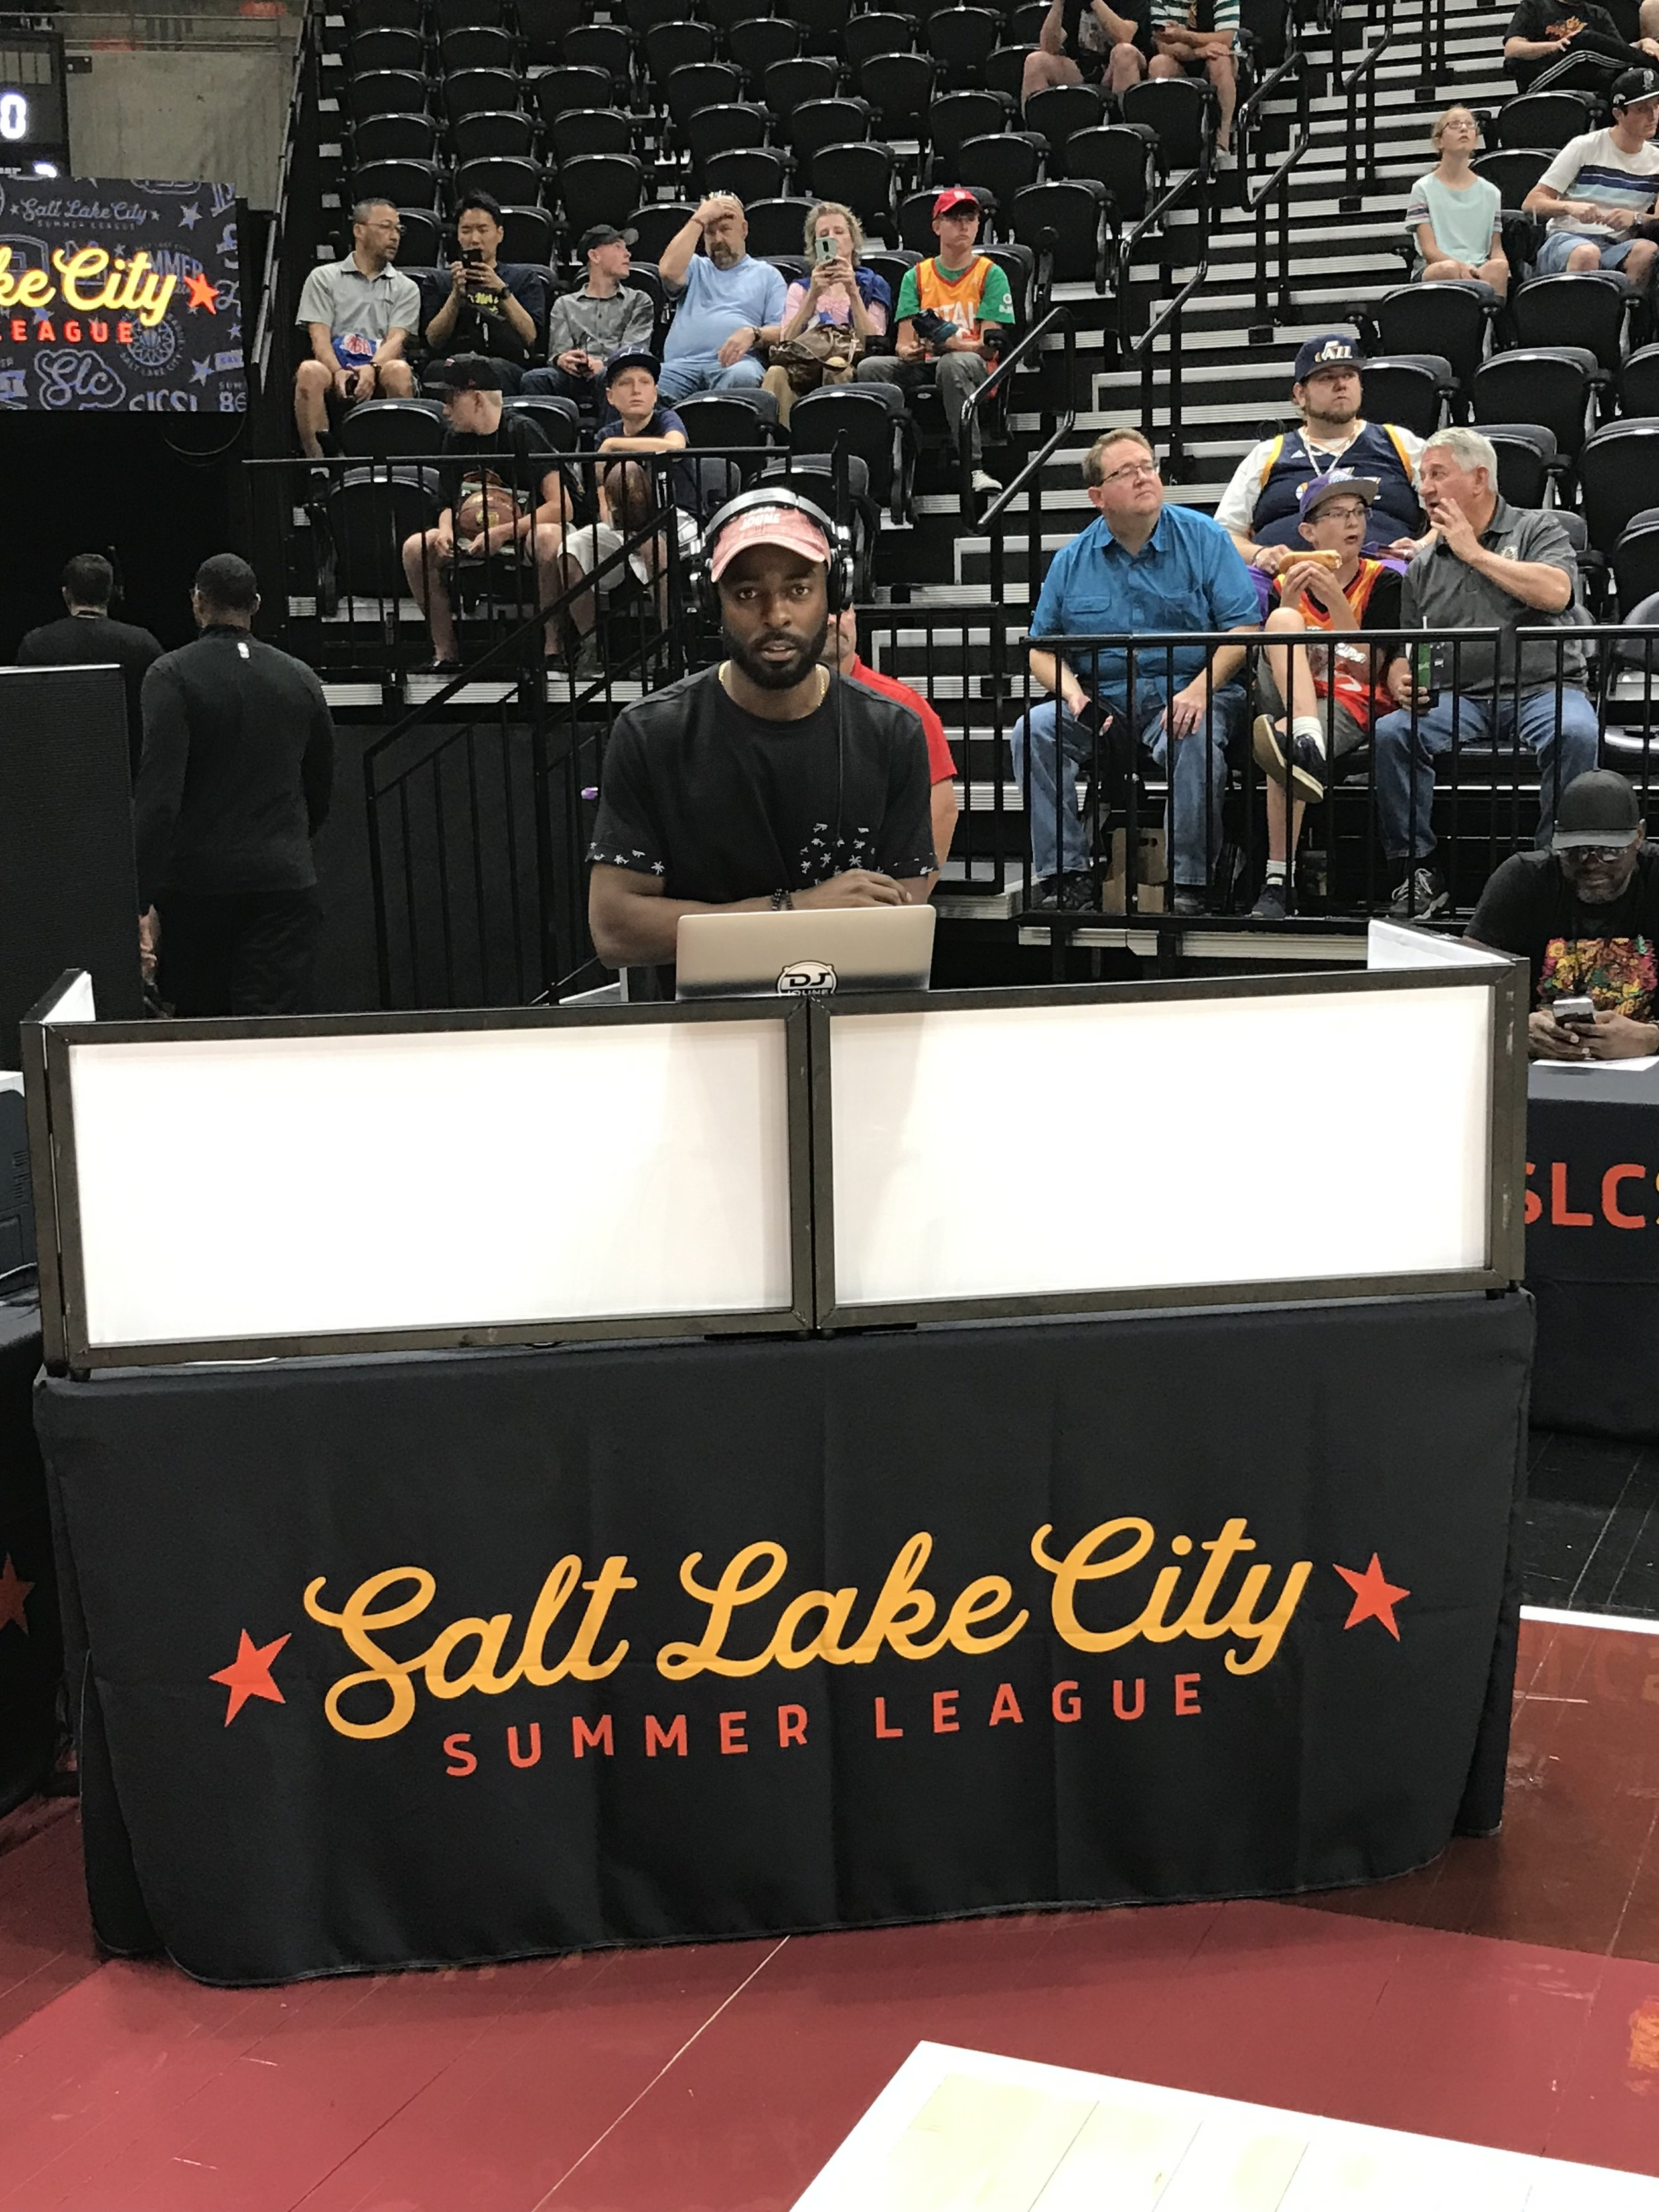 Salt Lake City, NBA Summer League 2019